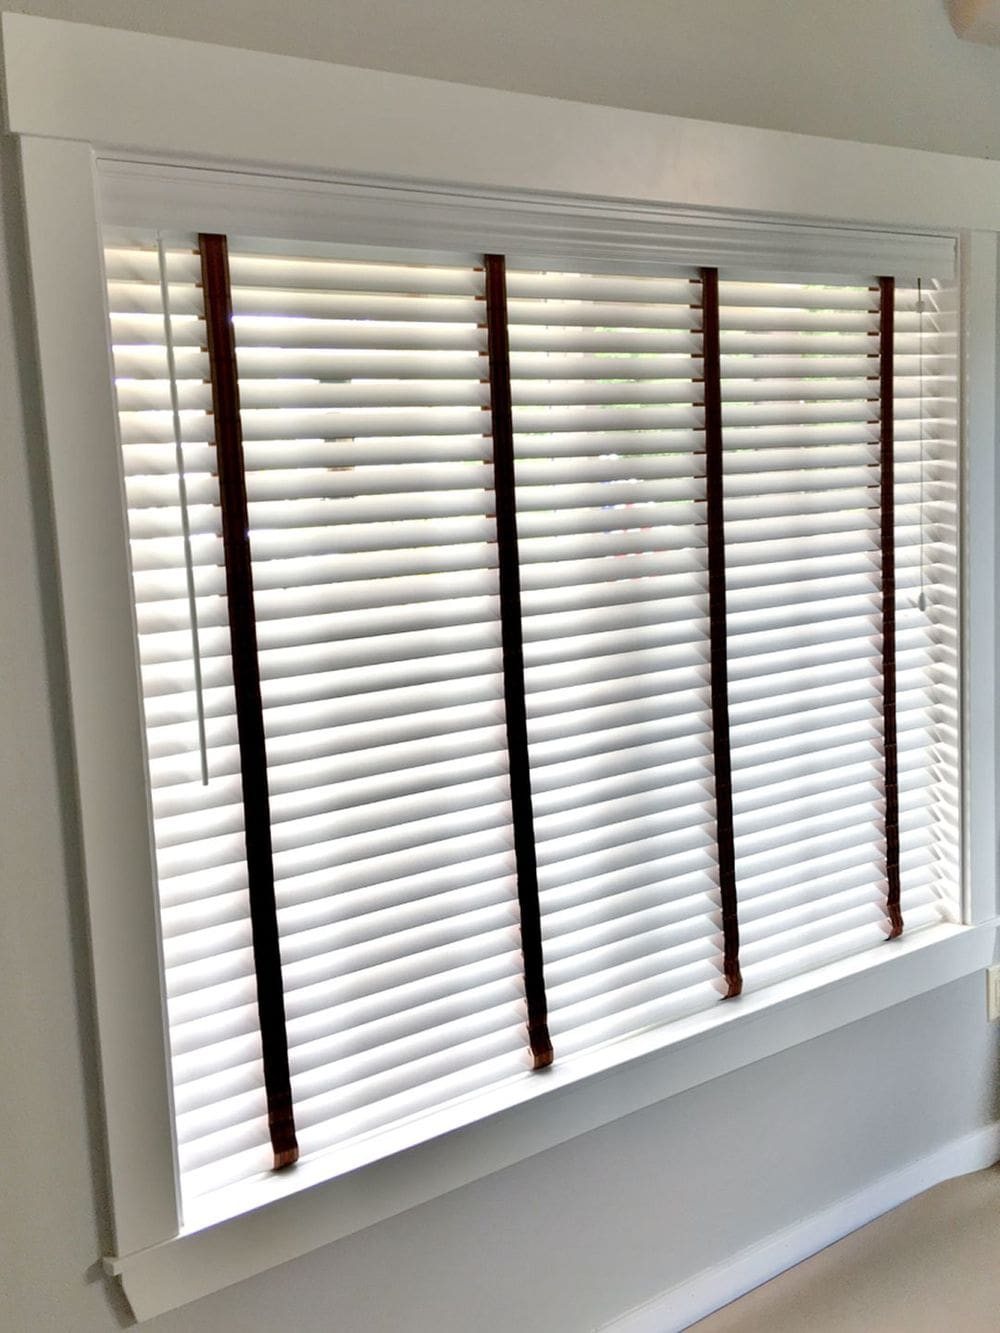 A closer look at this home's window and window blinds that look perfect with each other.